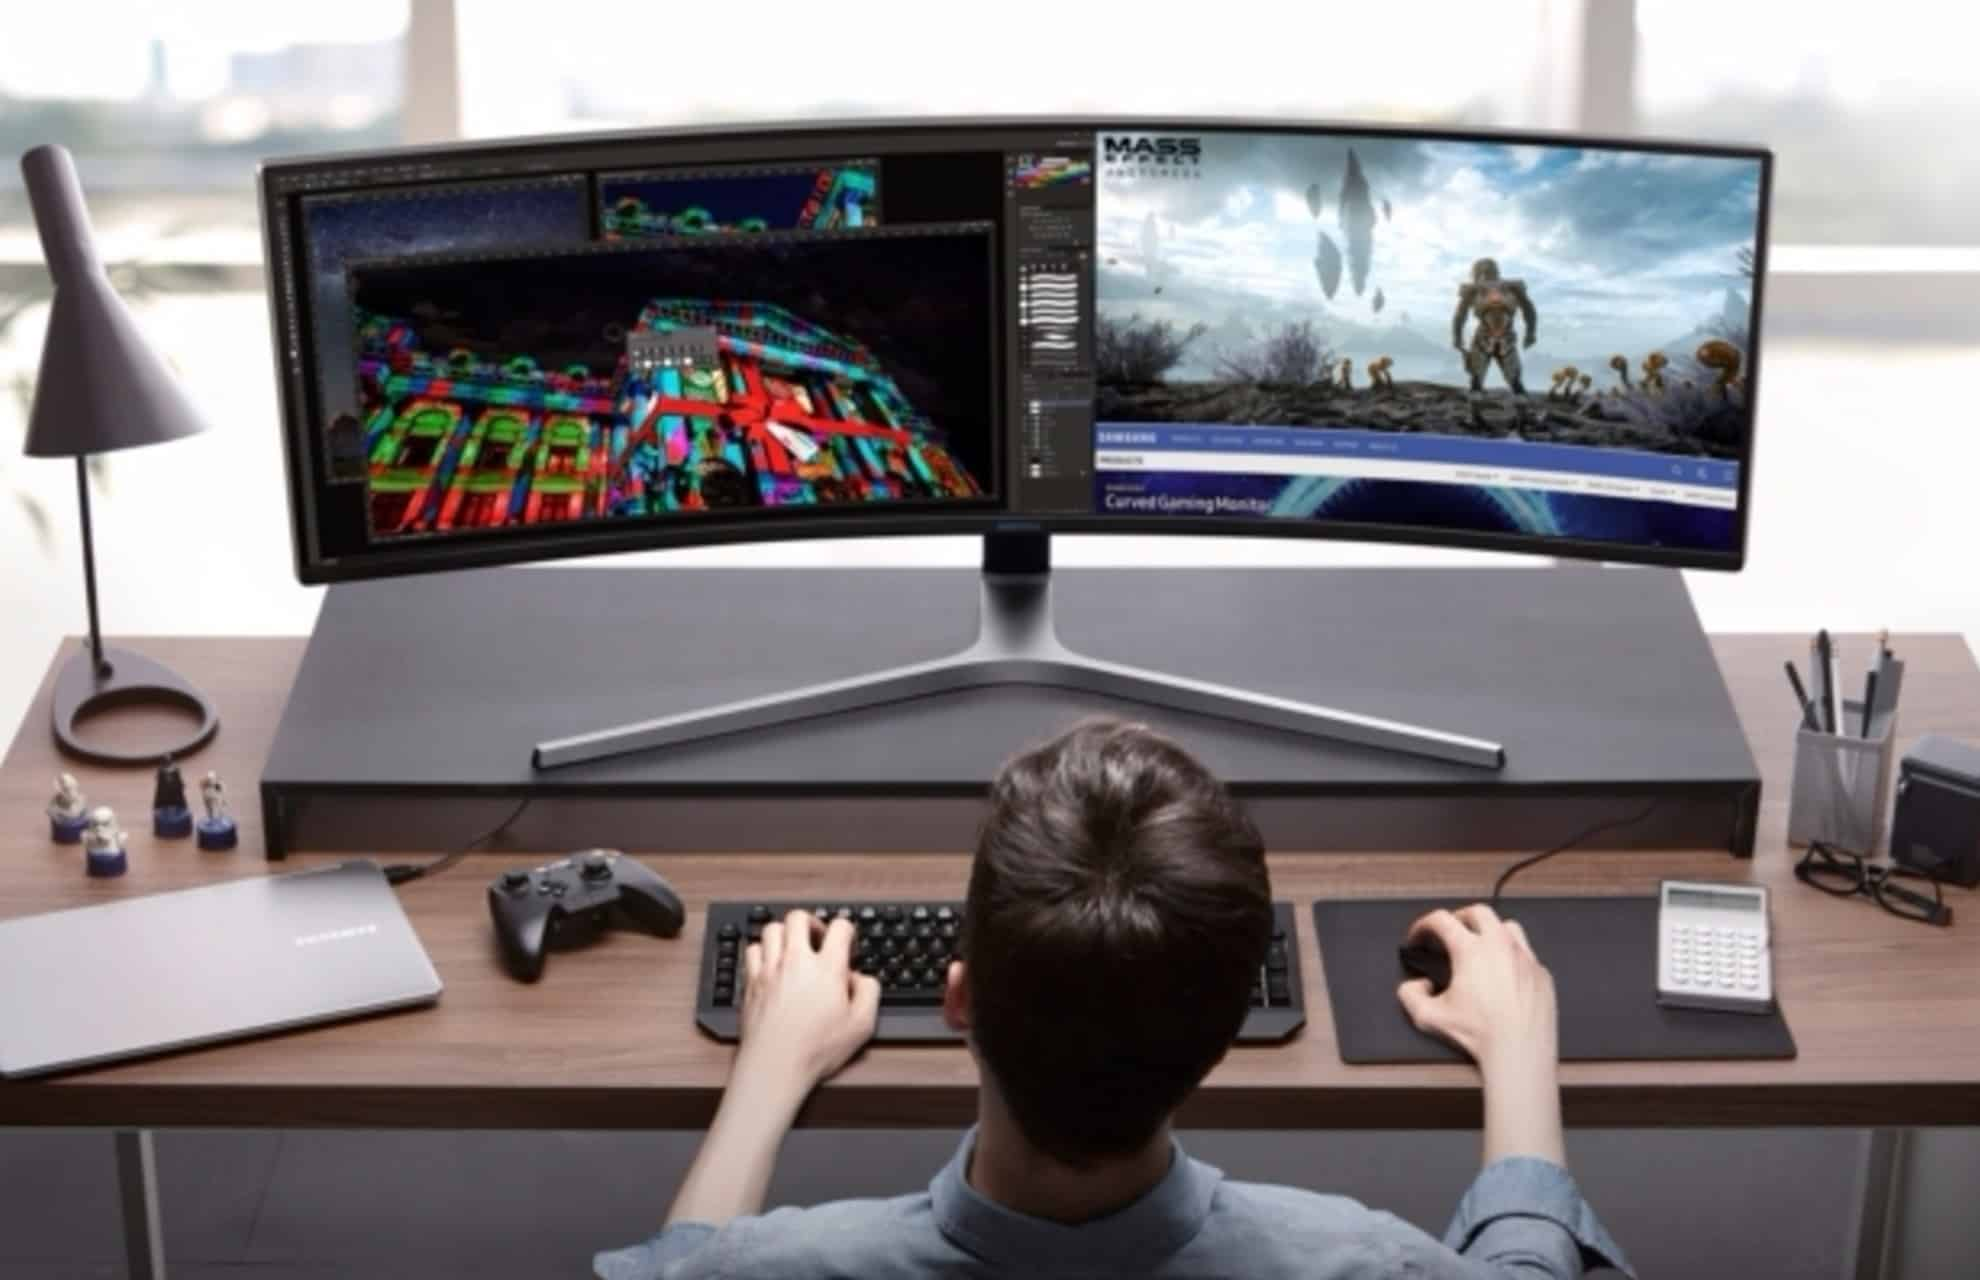 7 Best Dual Monitor Video Card in 2019 - EasyPCMod